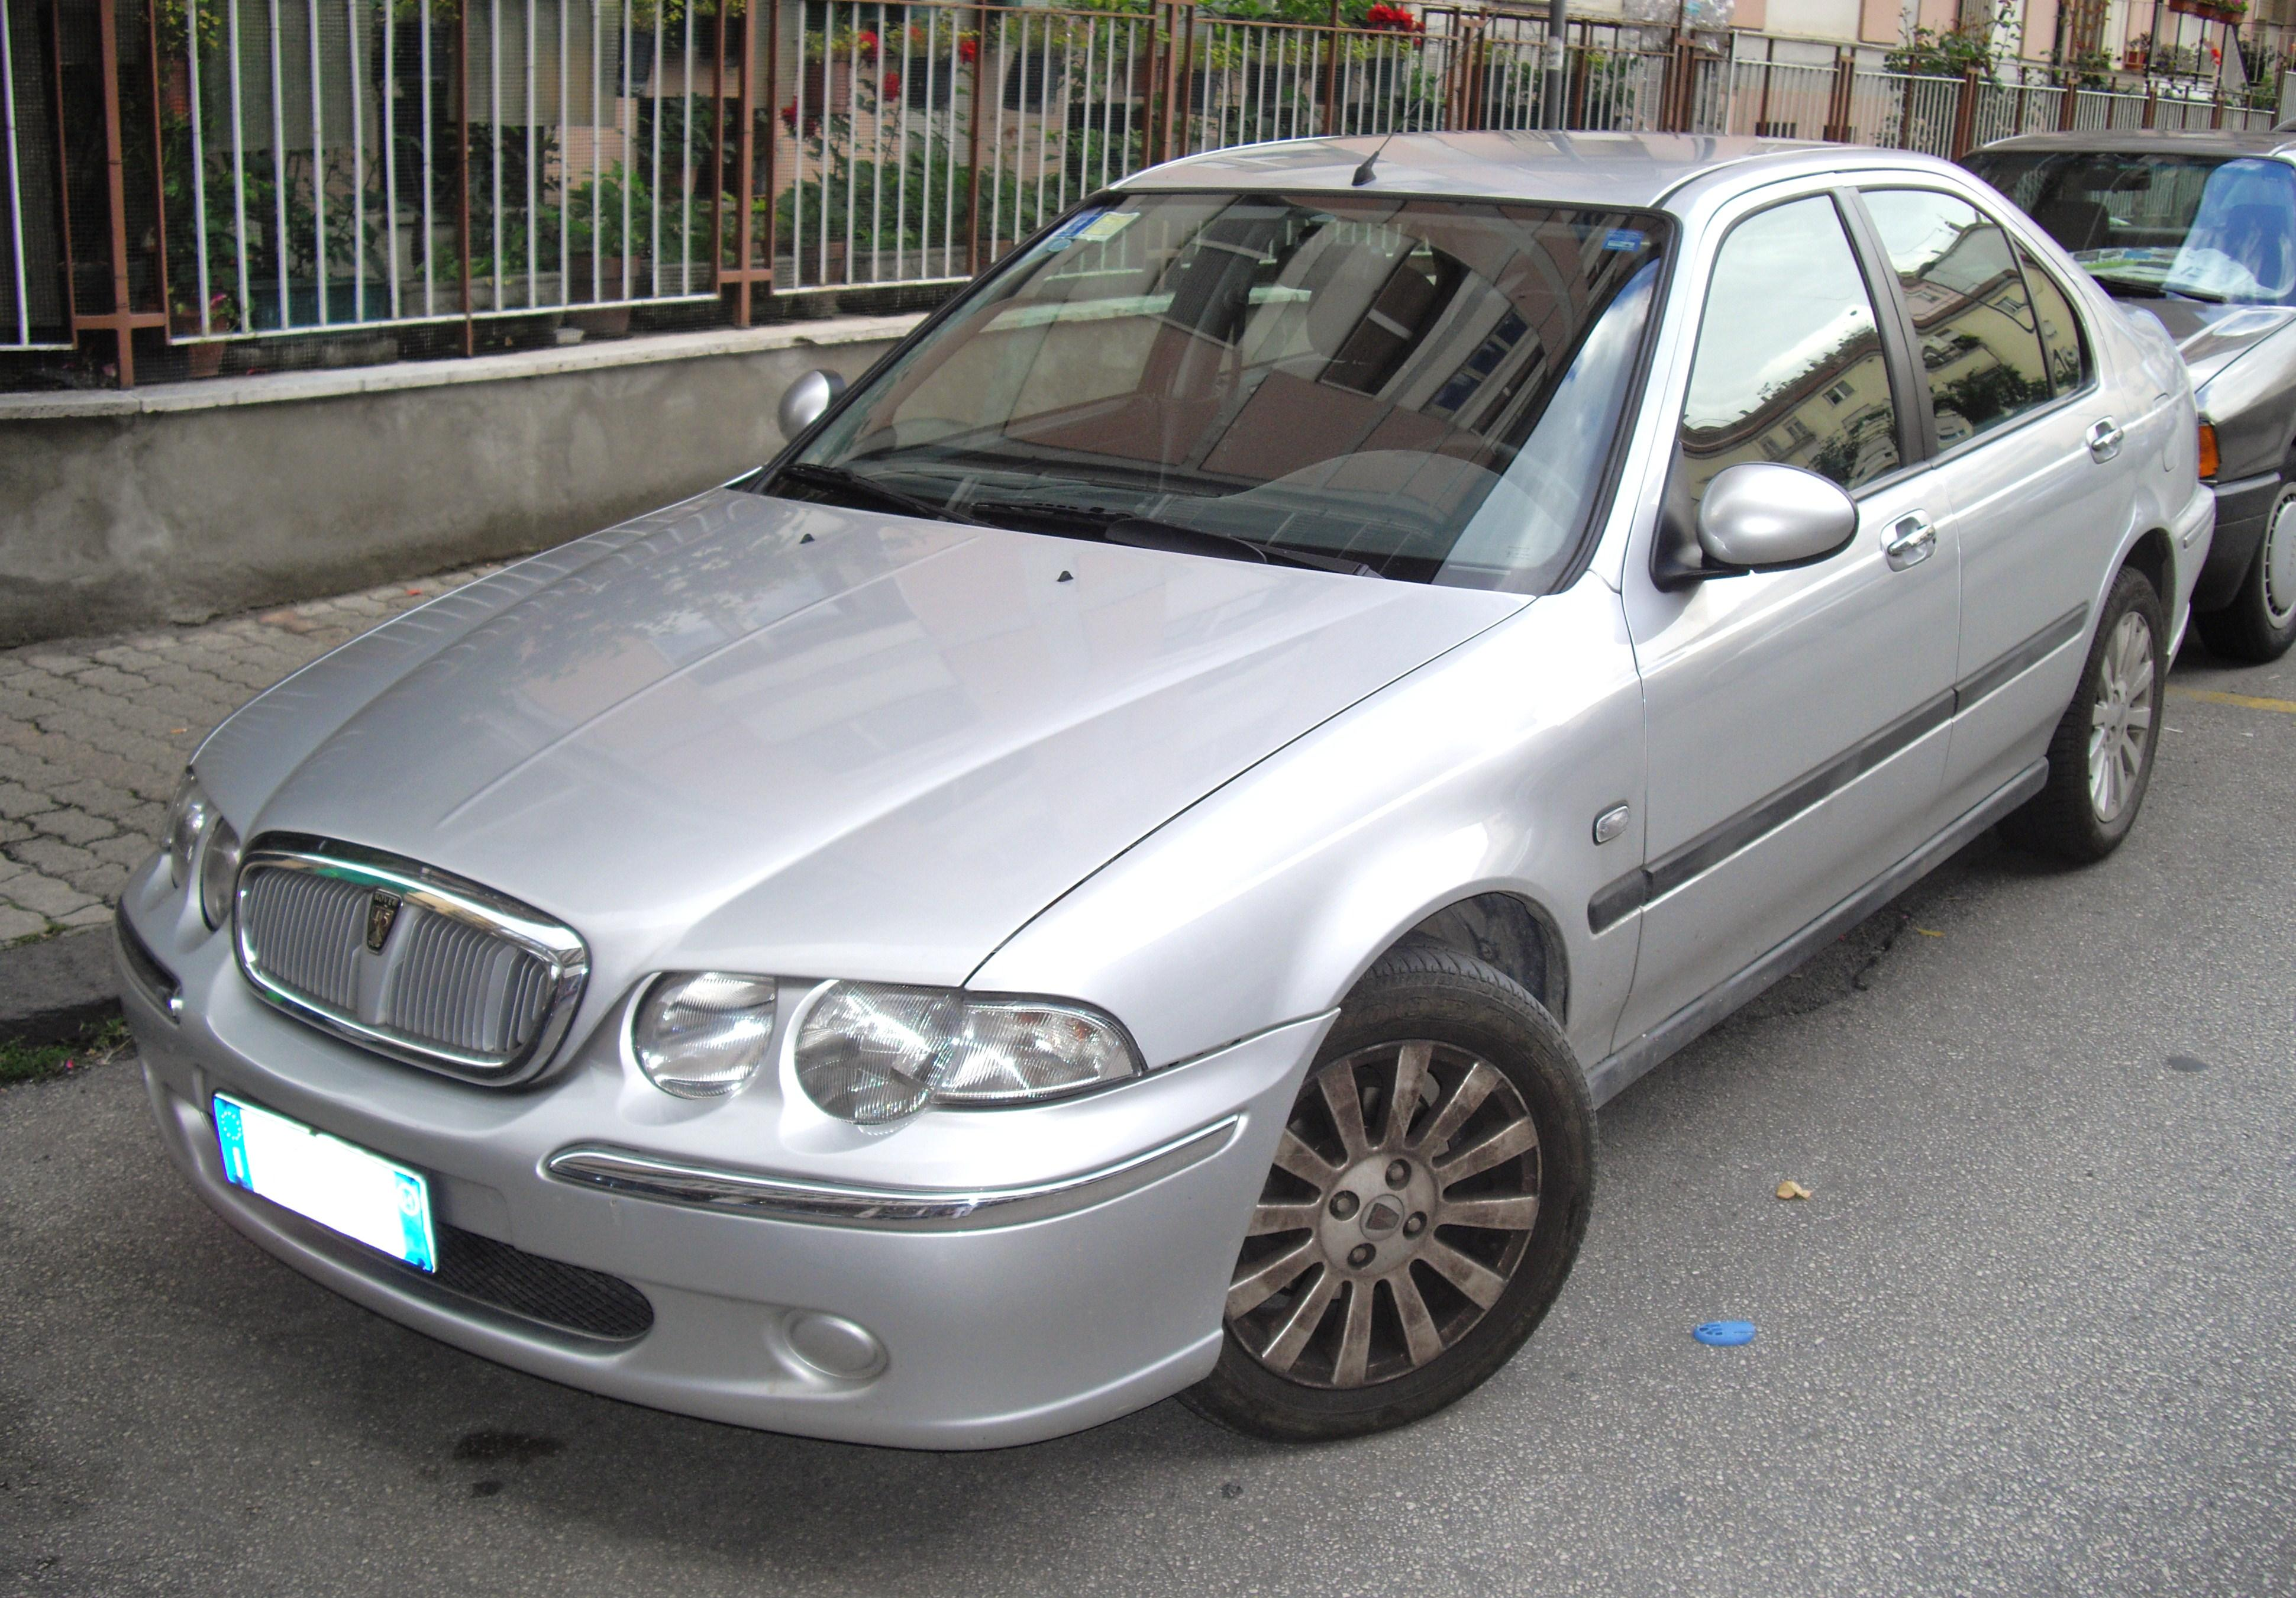 rover 45 images